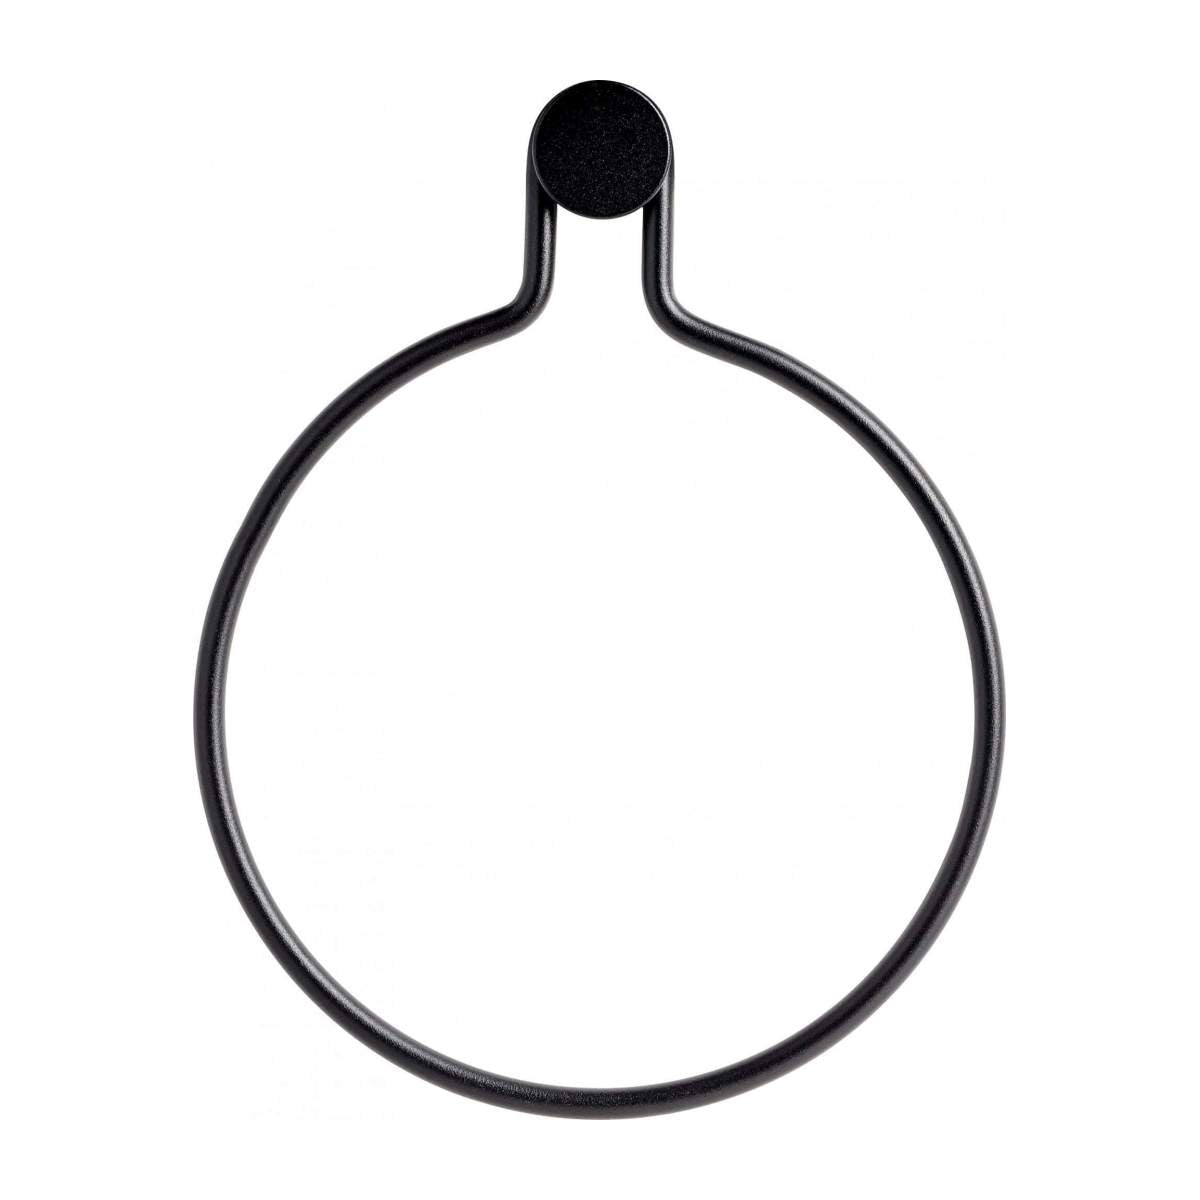 OTO/WALL ROUND METAL TOWEL RING